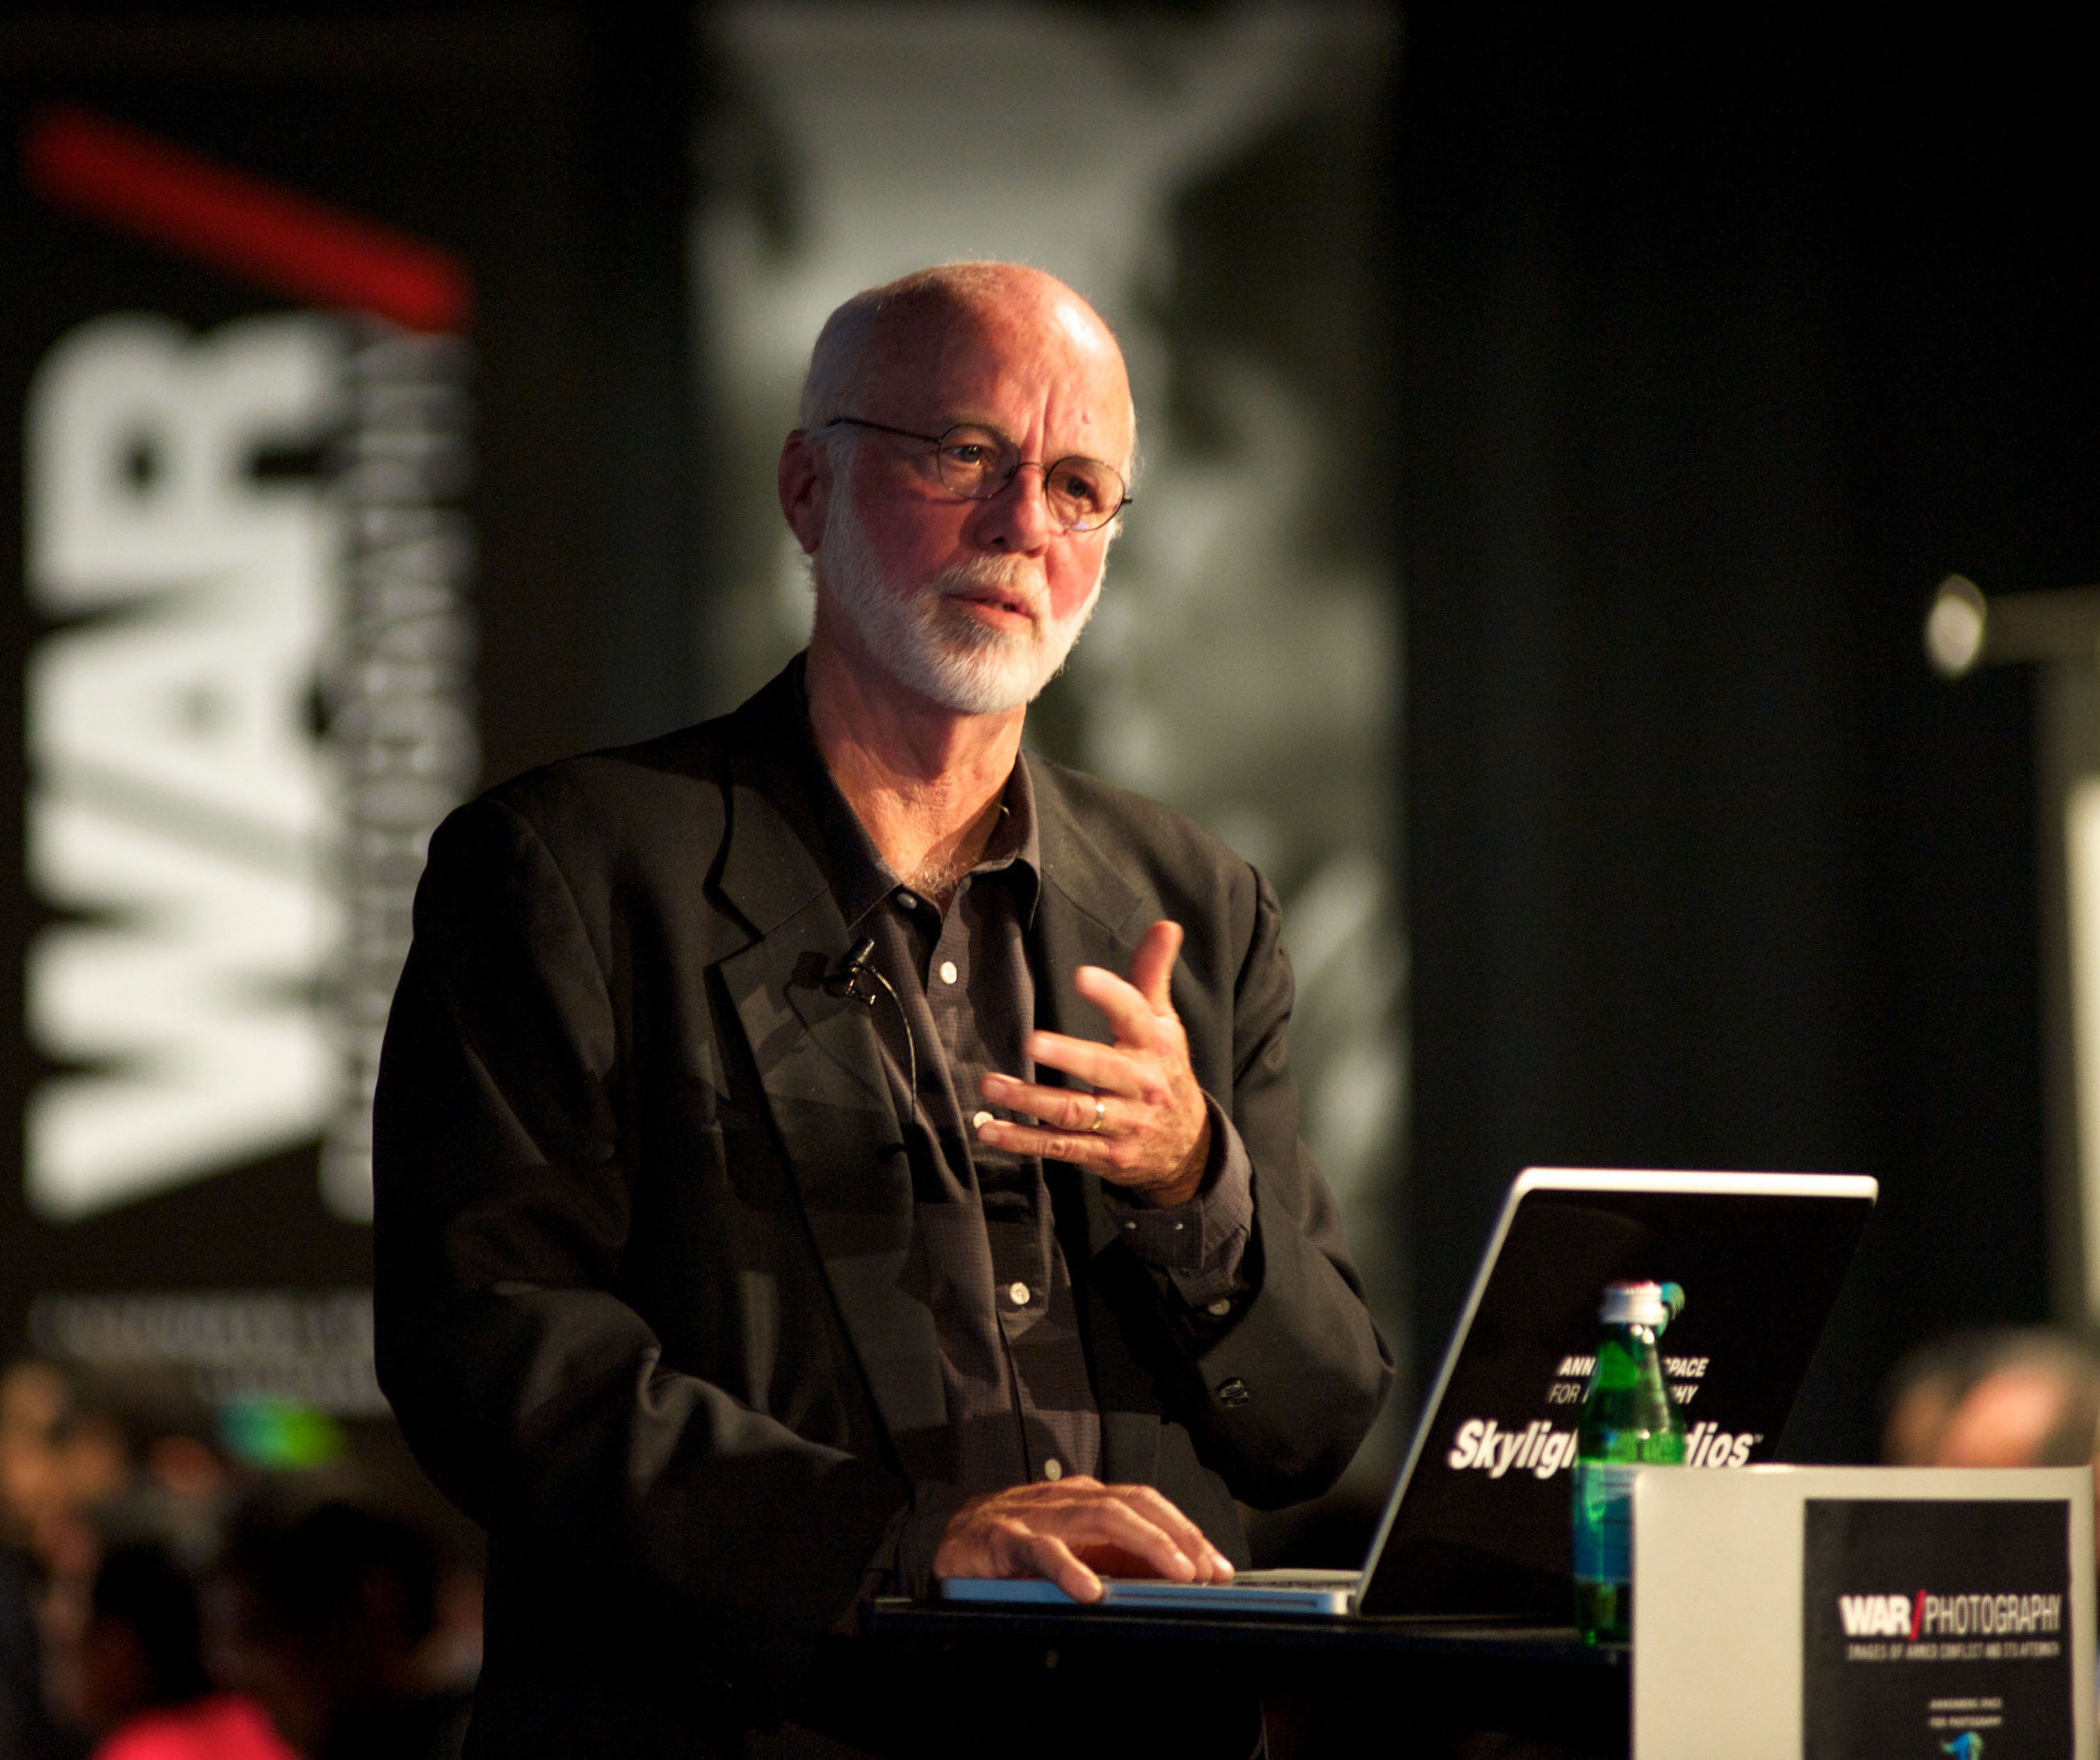 White House Photographer David Kennerly will Keynote RootsTech 2020 Salt Lake City.